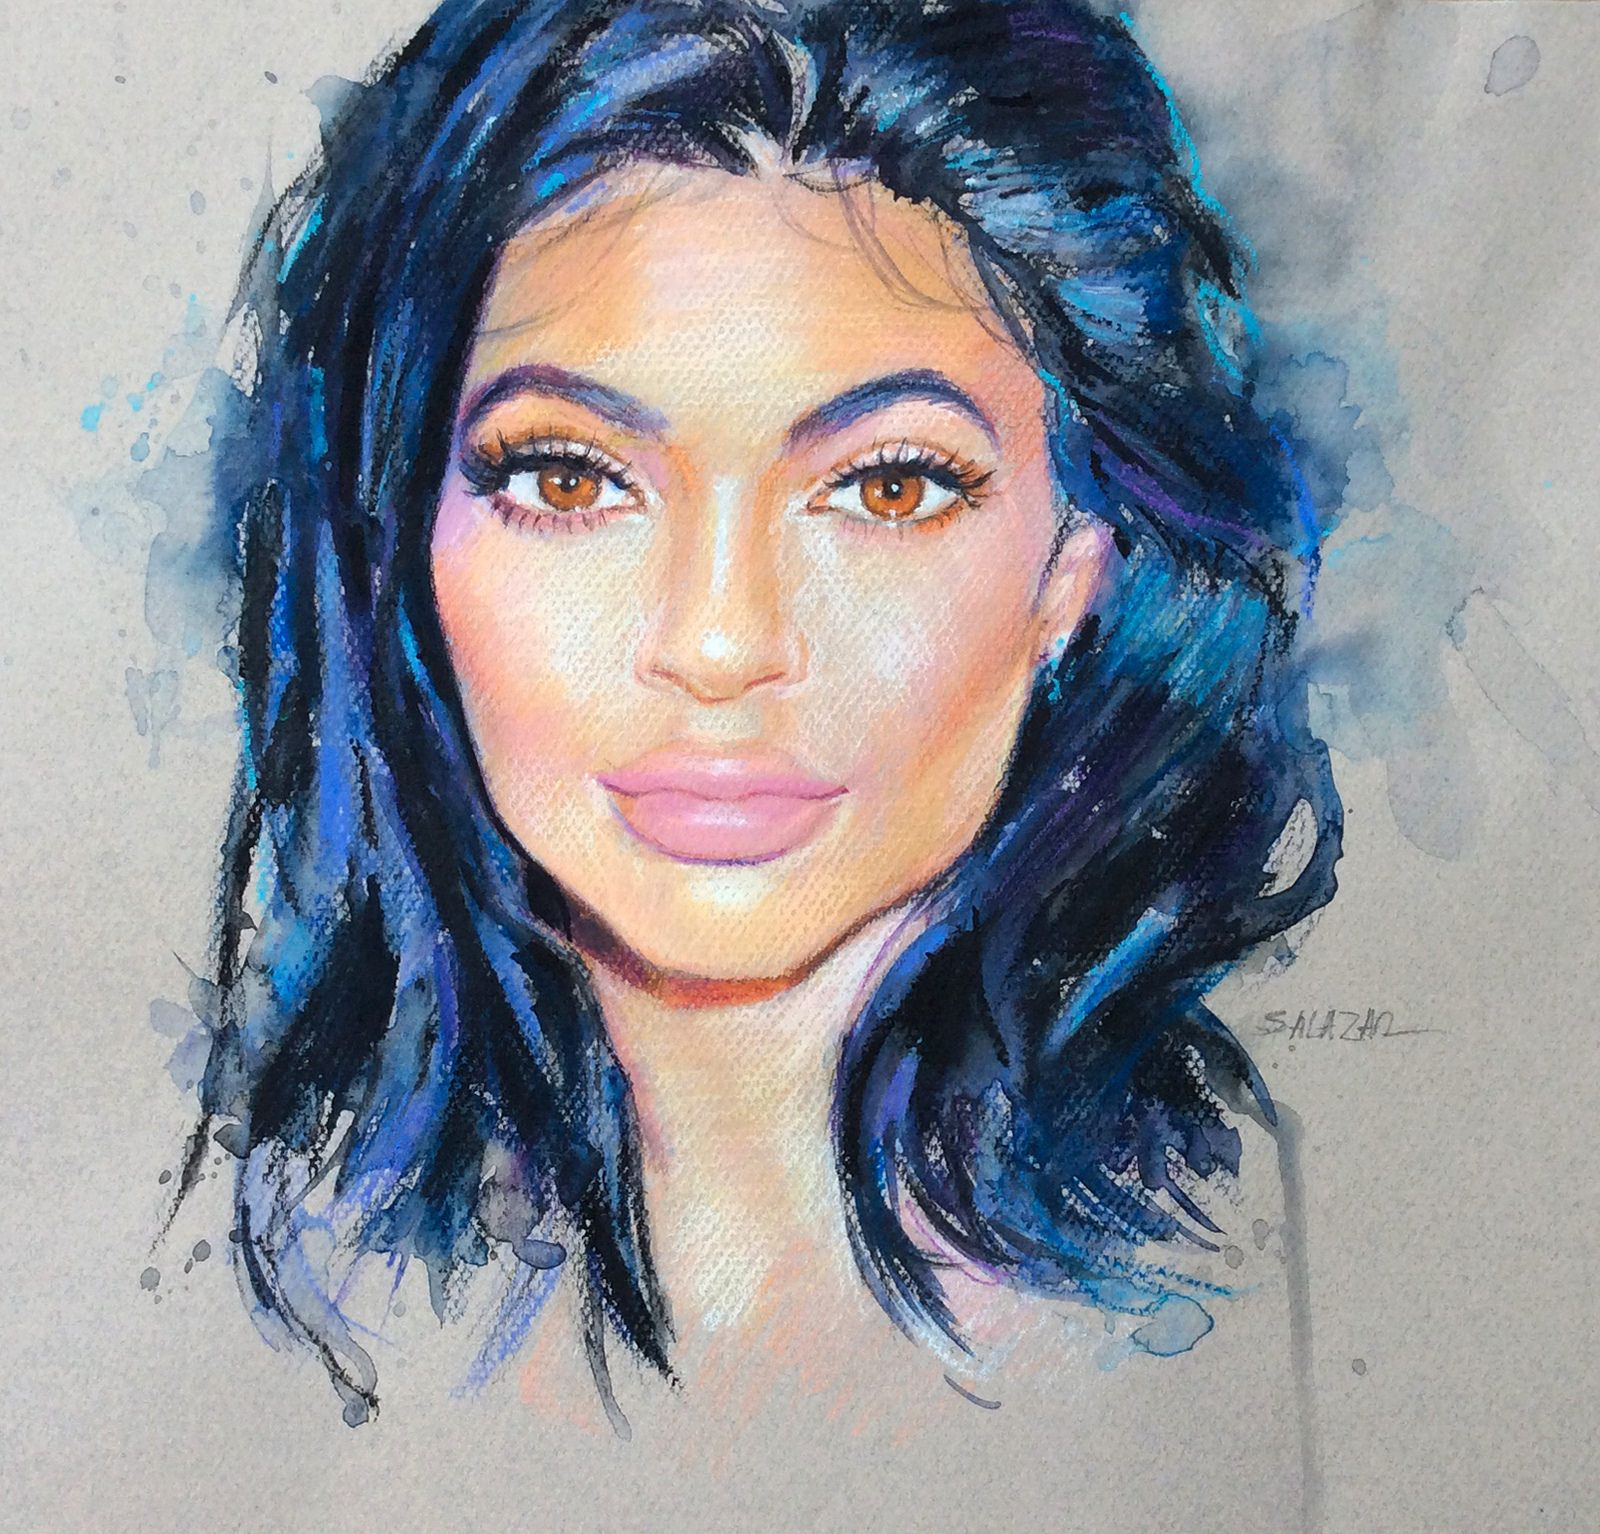 https://flic.kr/p/BUC7aq | Kylie Jenner | Pastel Caran d'Ache, Neocolor II watersoluble. Canson. Making of: youtu.be/PwlKgTaZHb8